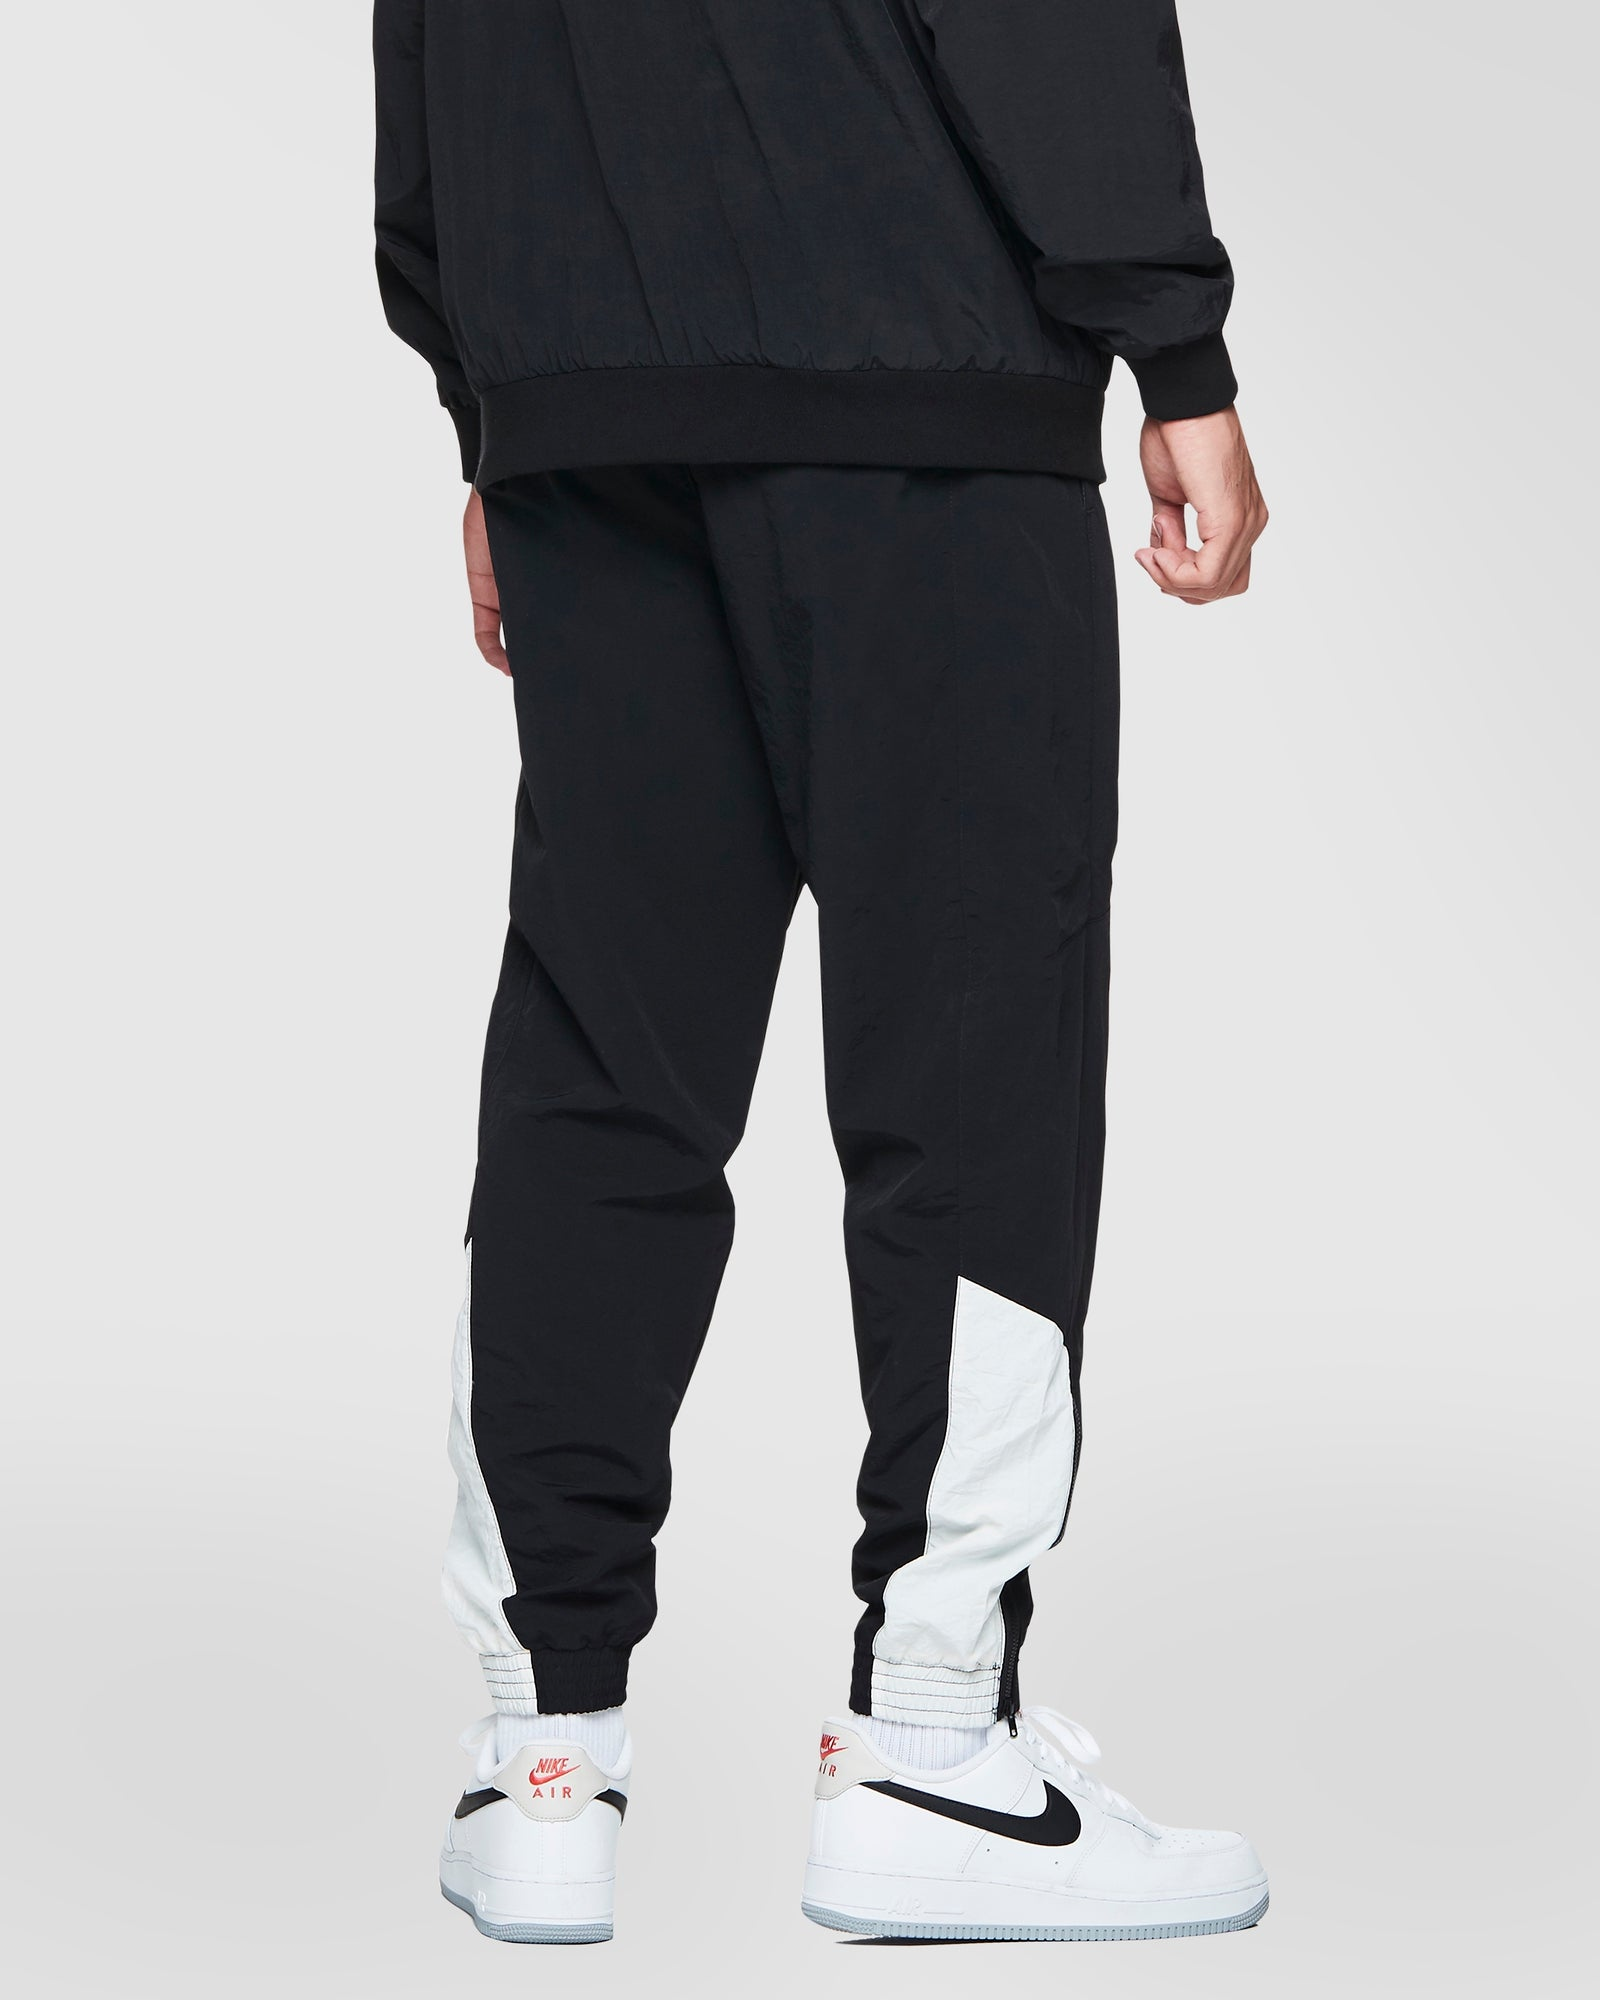 Annaheim Spray Pants